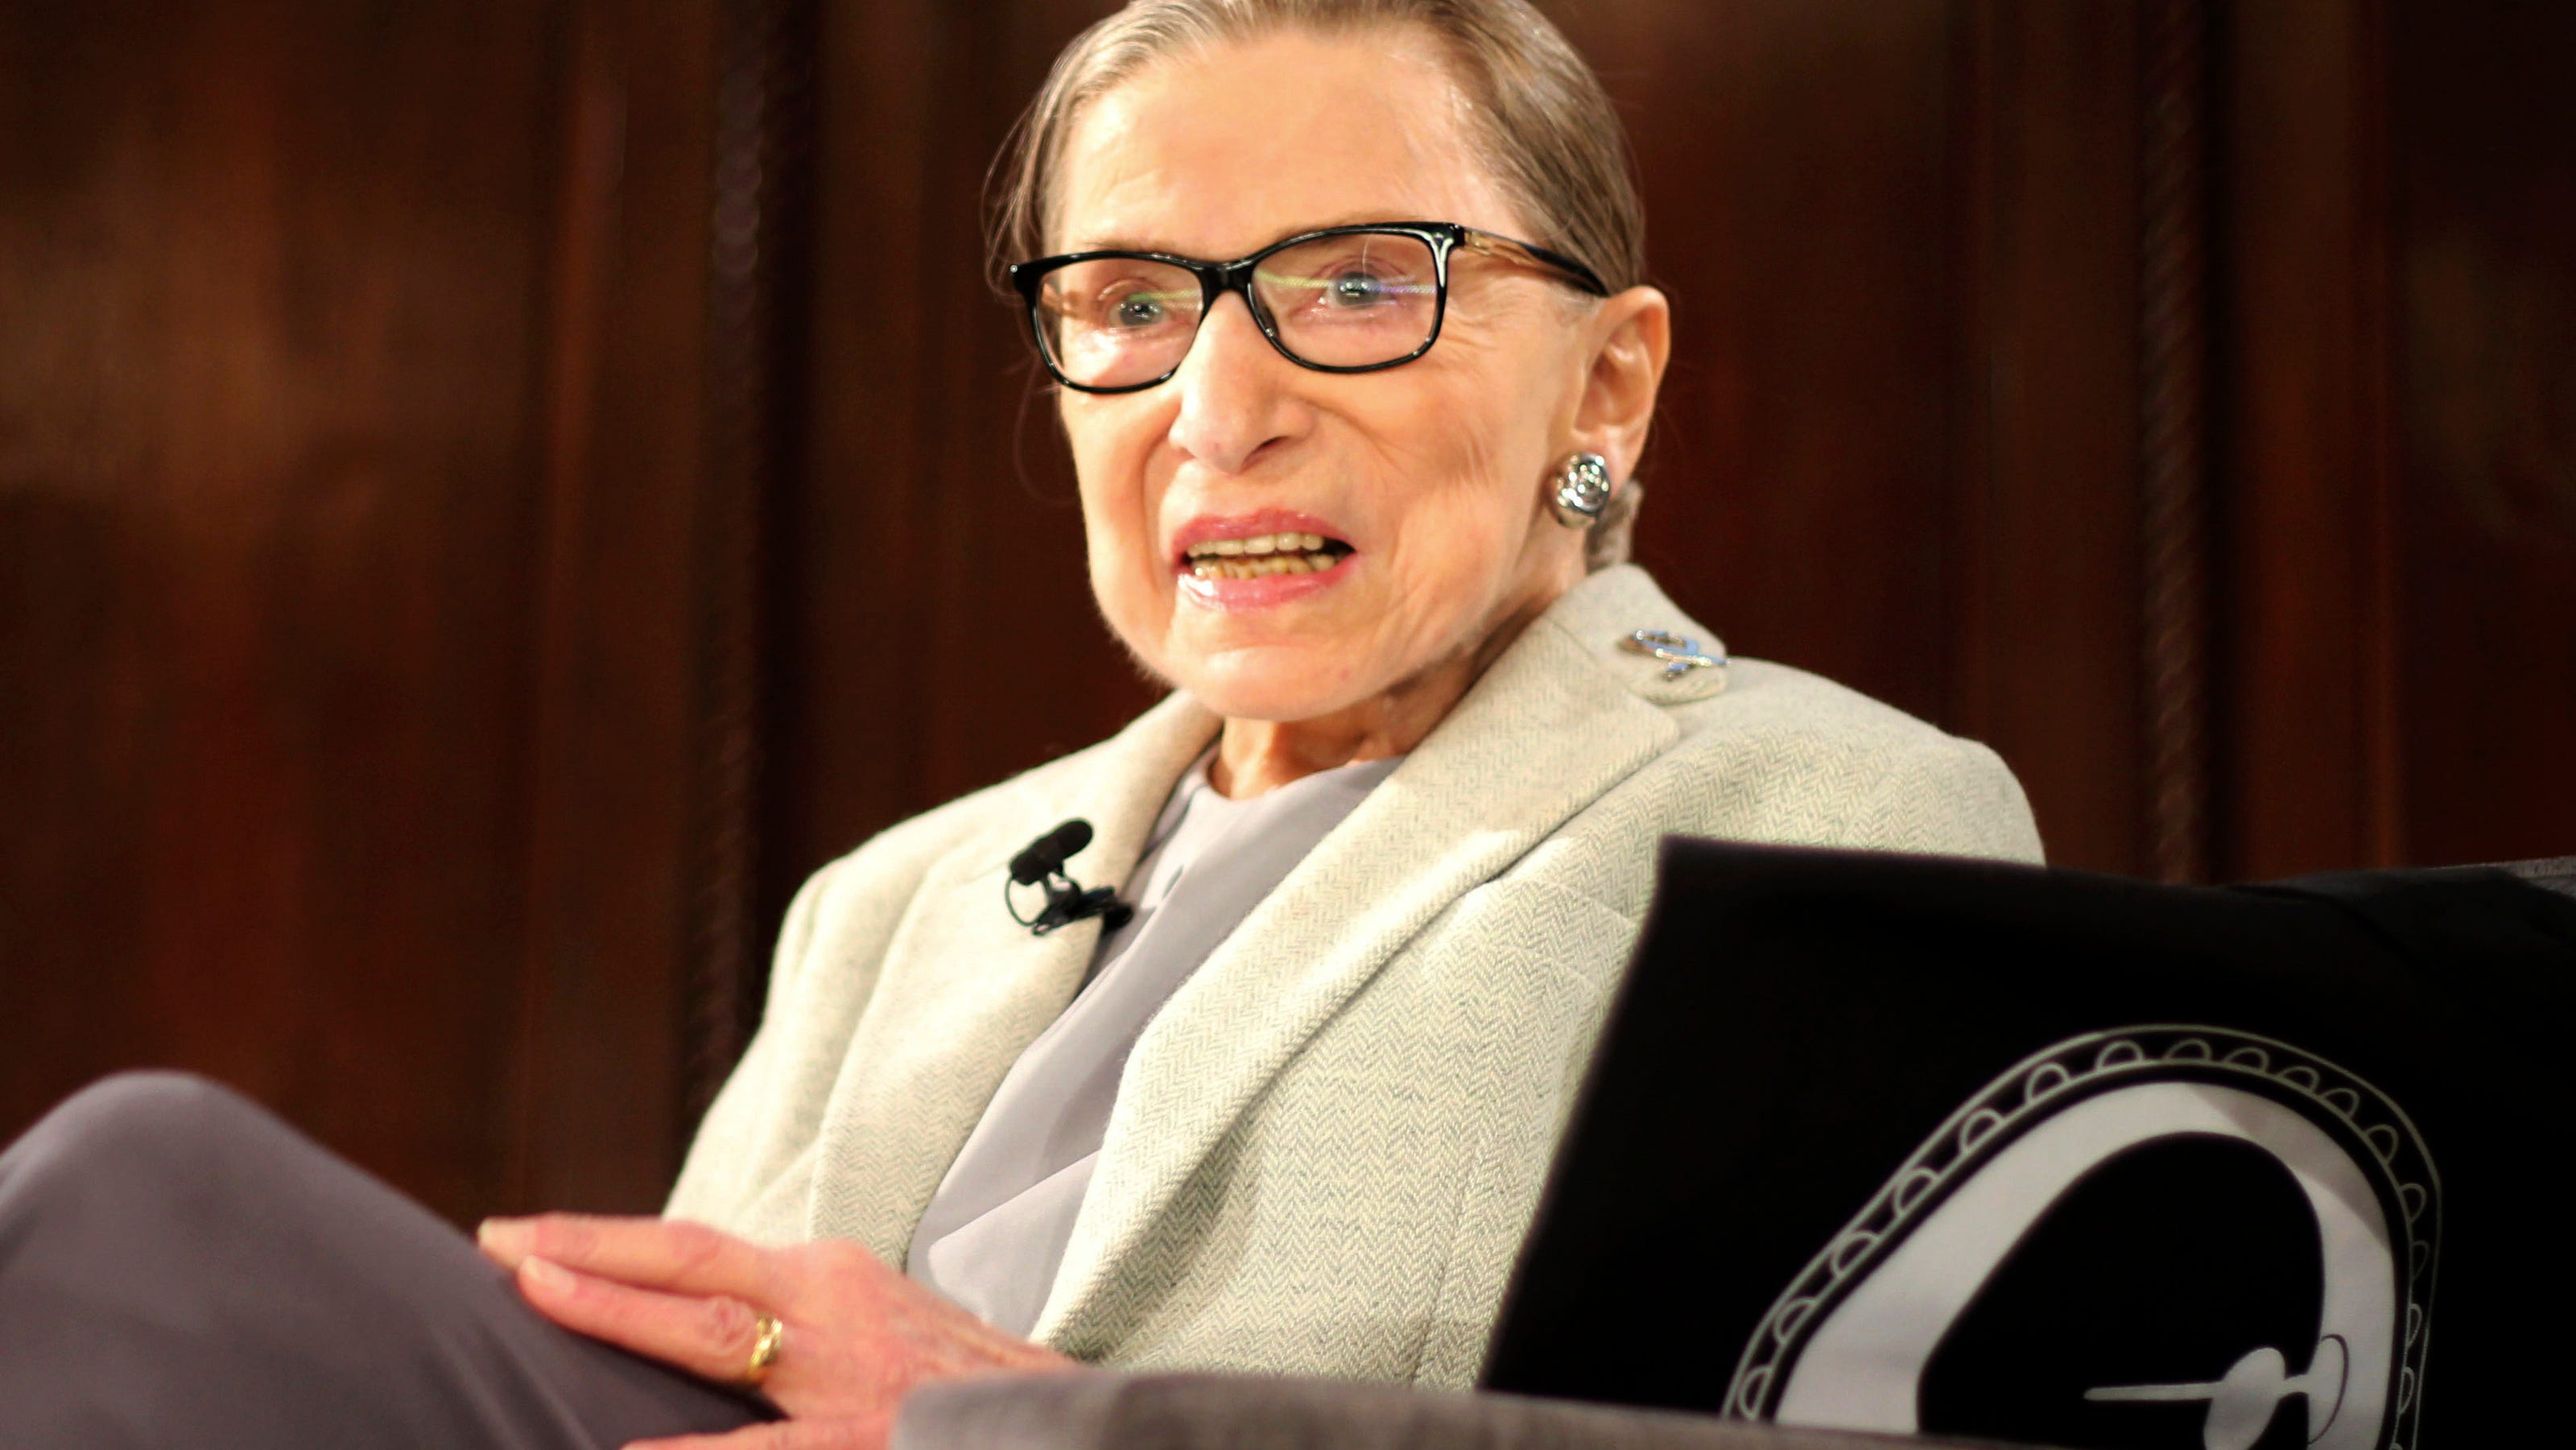 Ruth Bader Ginsburg's last wish: 'I will not be replaced until a new president is installed'